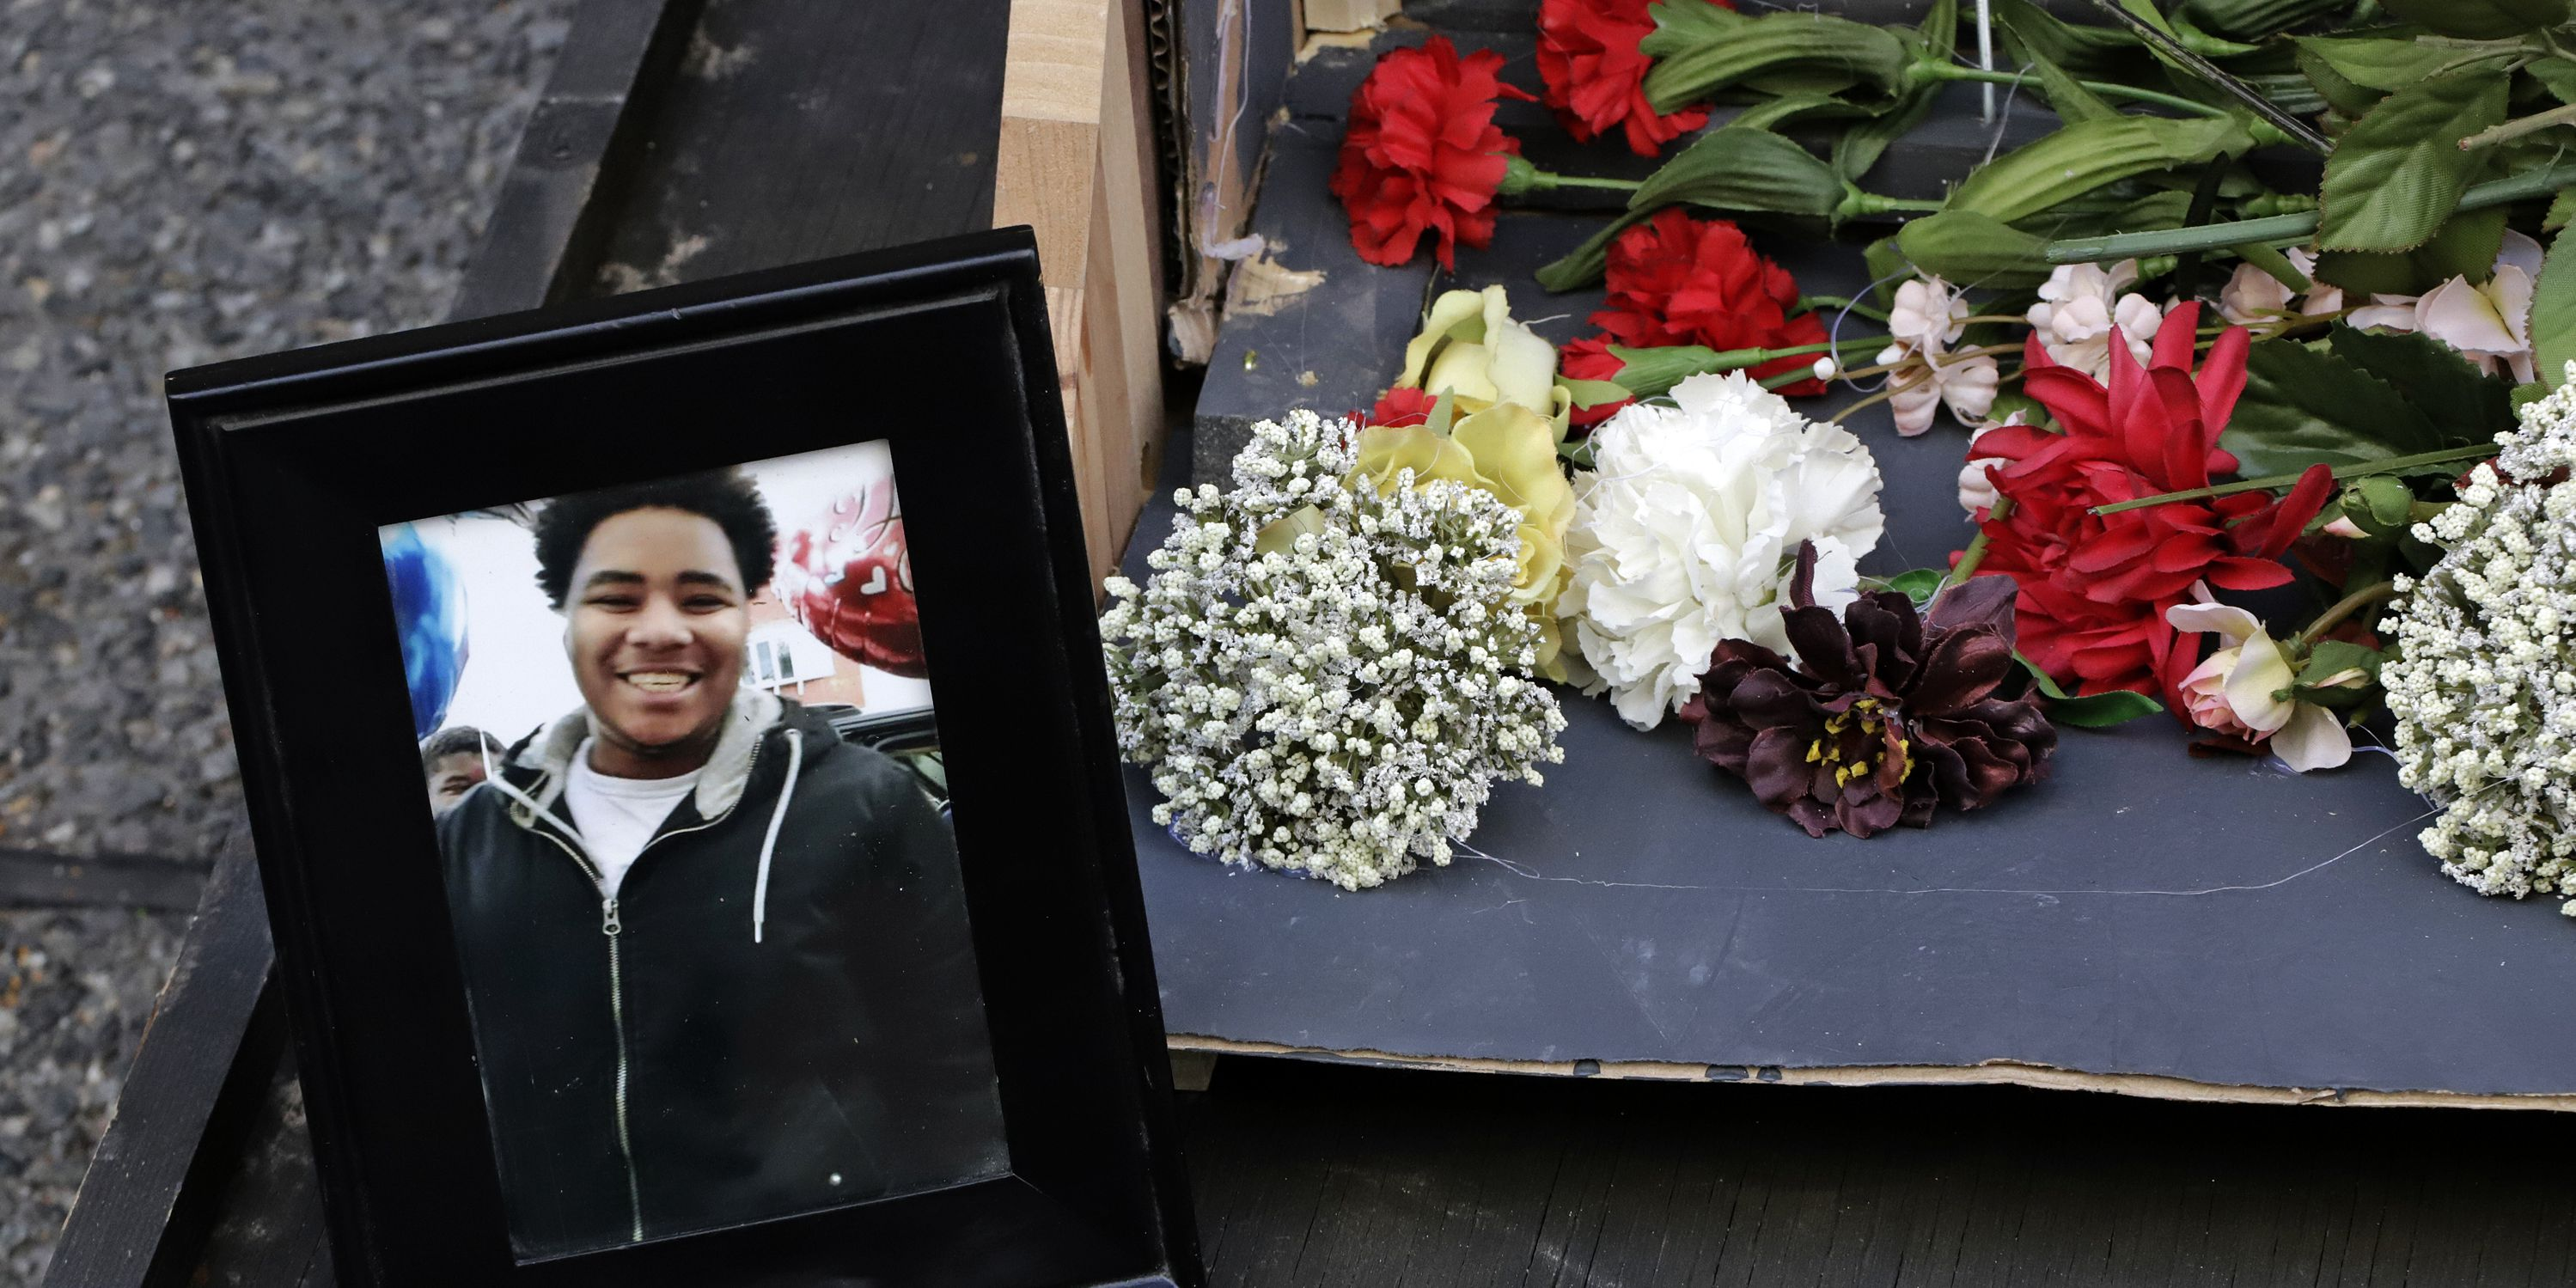 Jury acquits white cop who shot and killed unarmed black teenager Antwon Rose